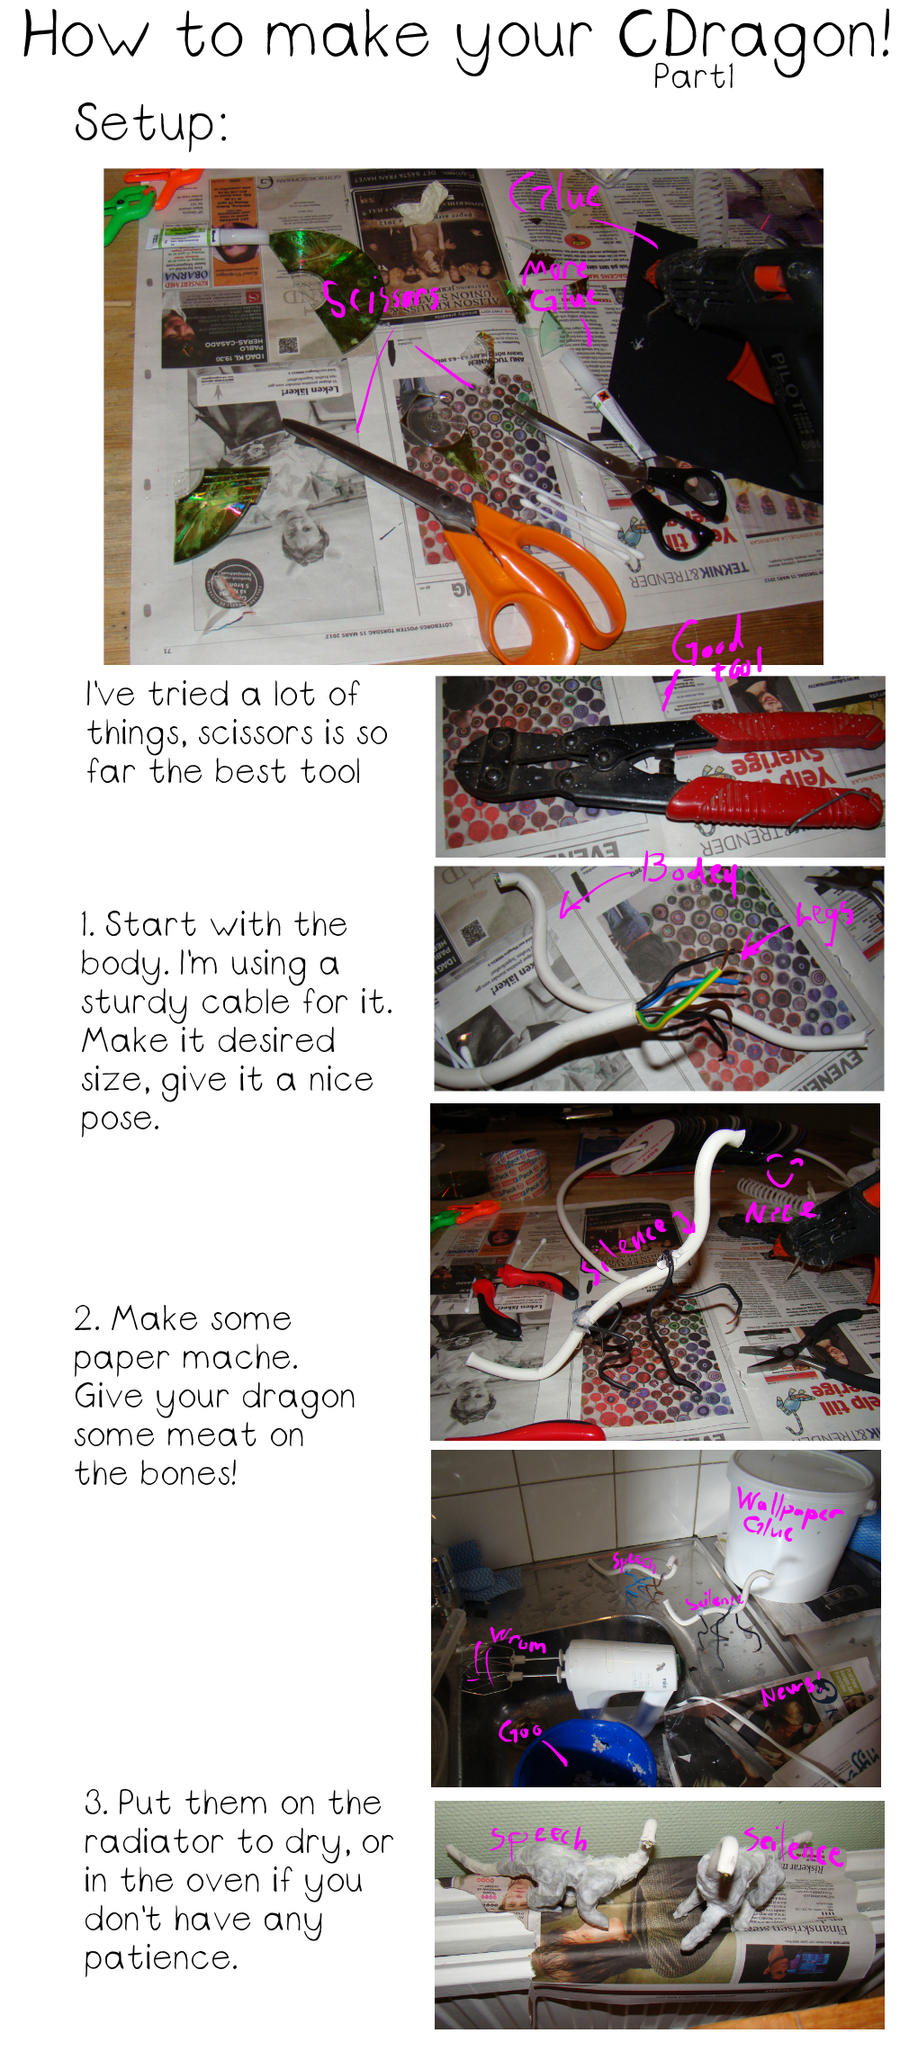 How to make your CDragon part1 by Jedni